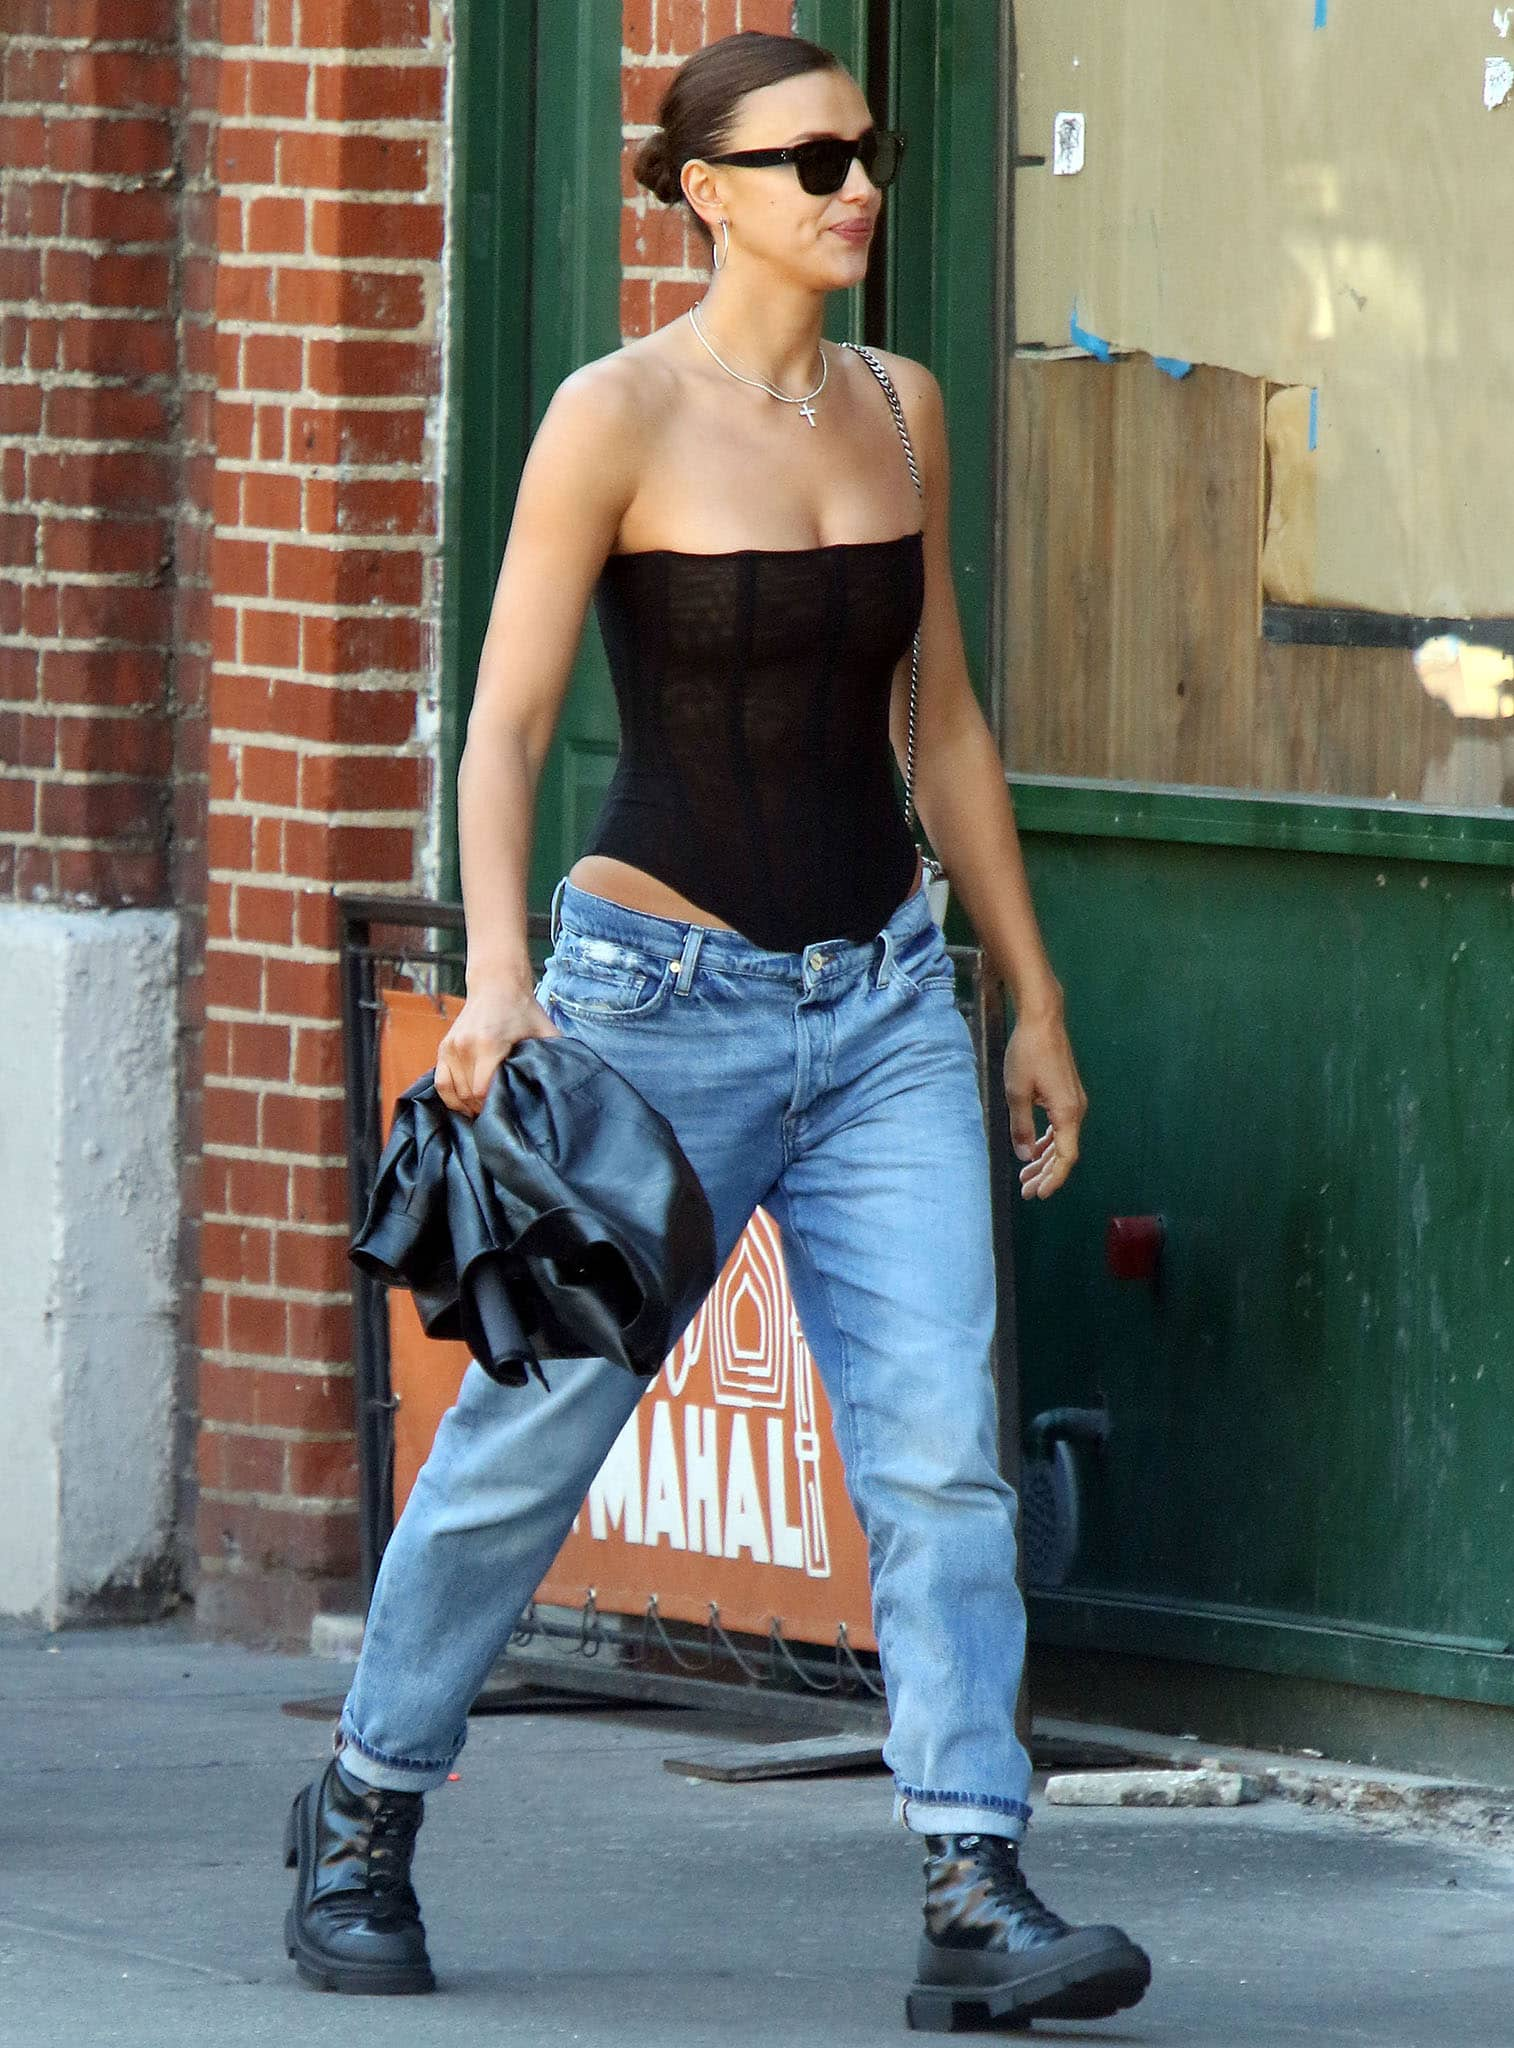 Irina Shayk embraces the whale tail trend in a black naked corset from Are You Am I paired with low-rise jeans